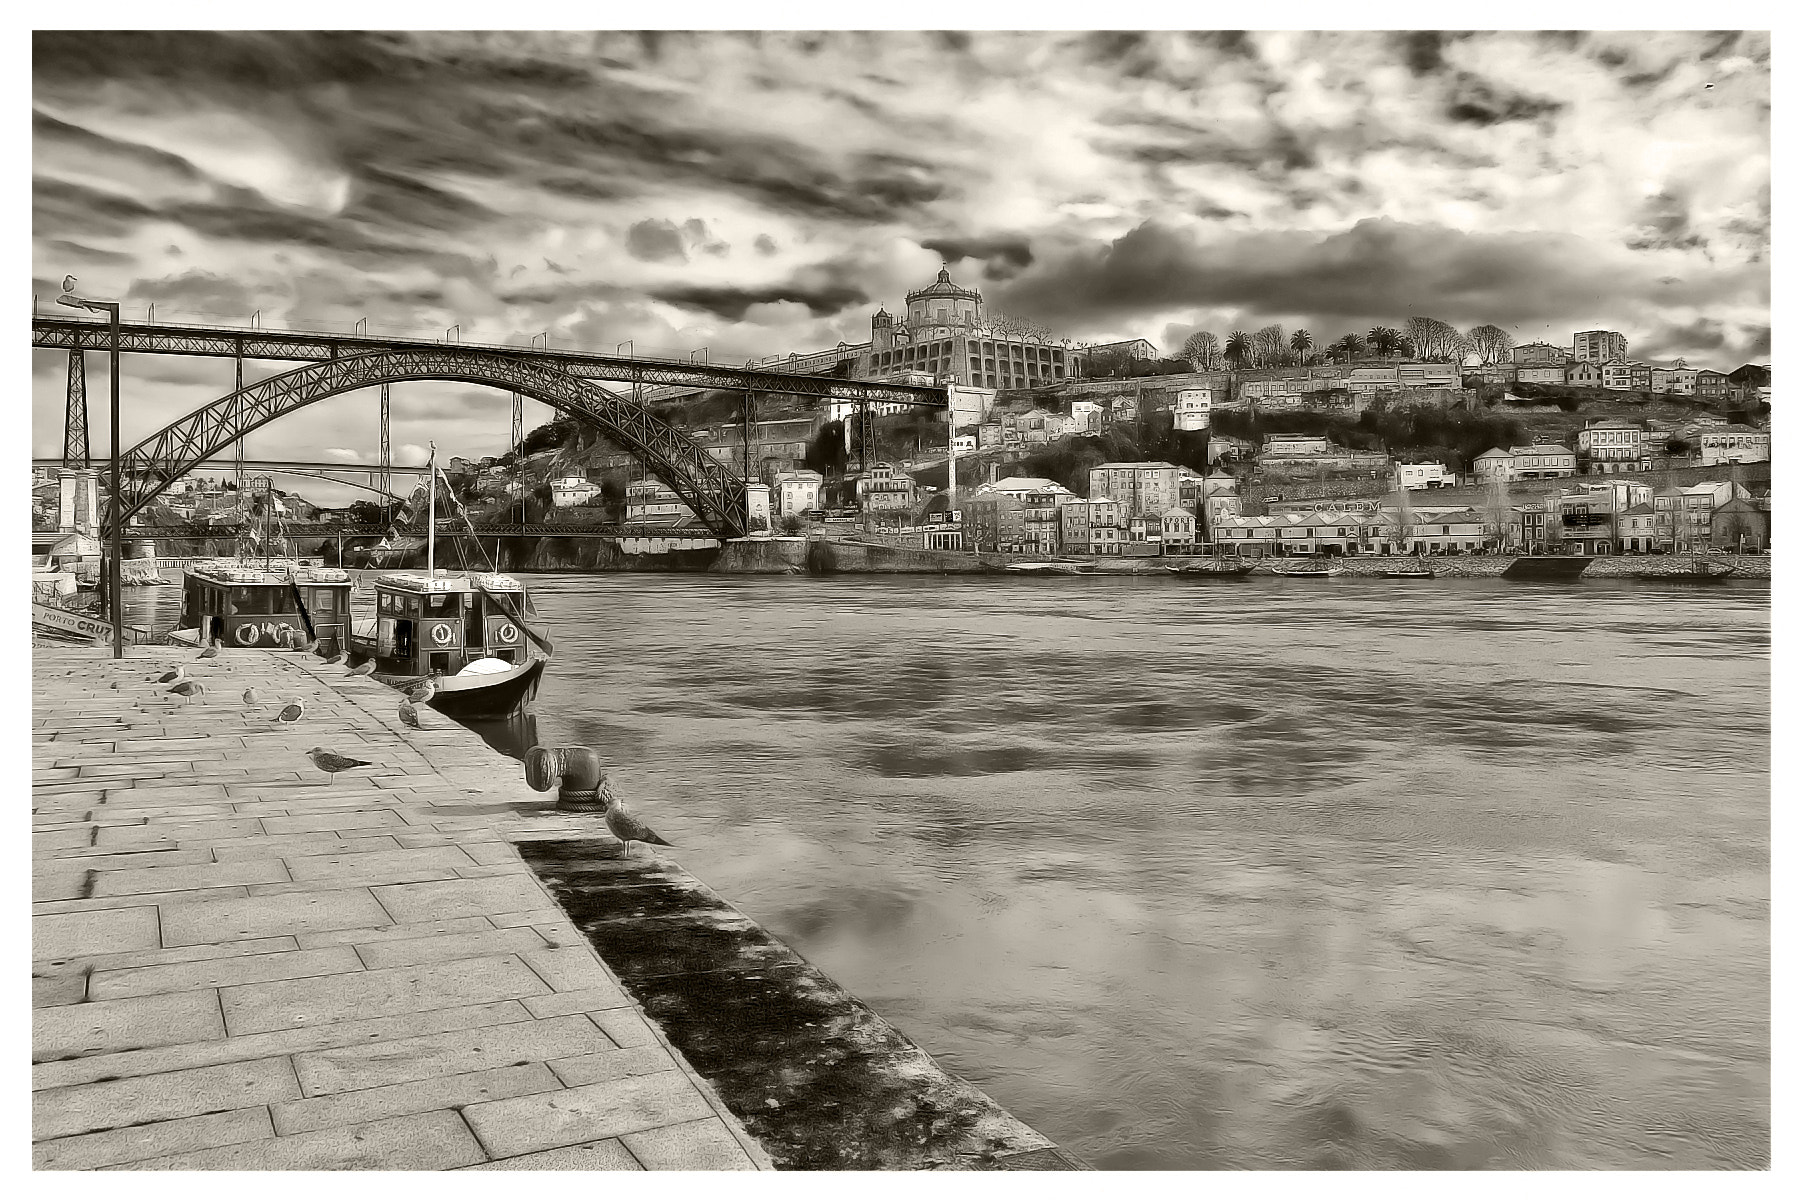 Photograph Ribeira by J. M. Molinelli on 500px